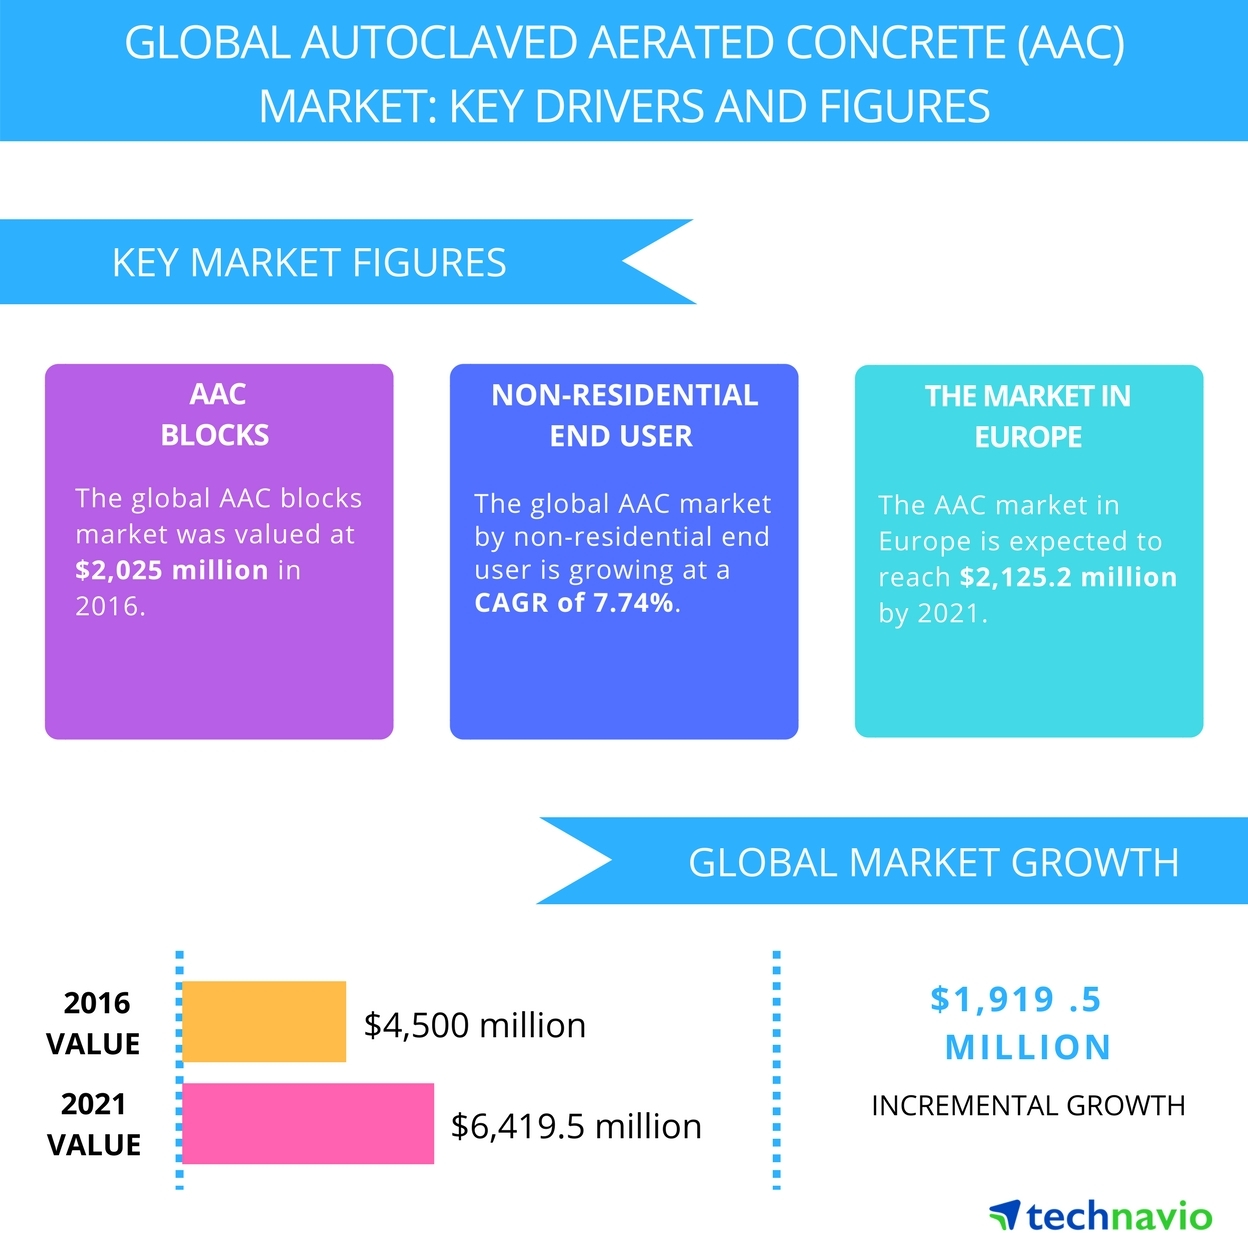 Top 5 Vendors in the Global Autoclaved Aerated Concrete